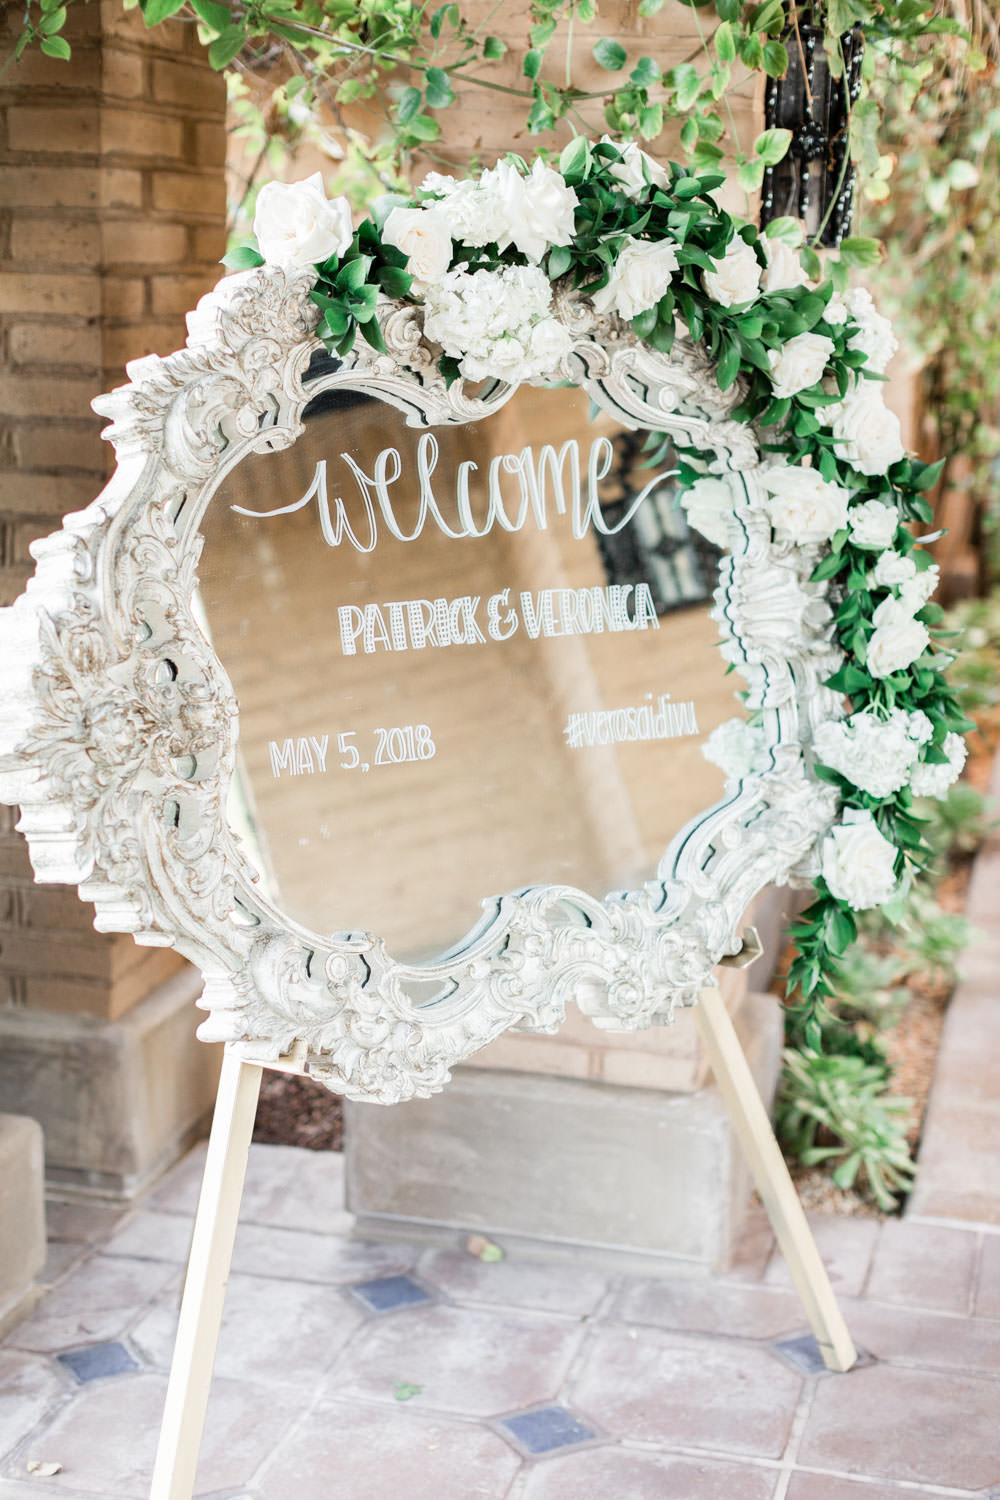 Wedding welcome sign with calligraphy on mirror with white and green flowers, Cavin Elizabeth Photography